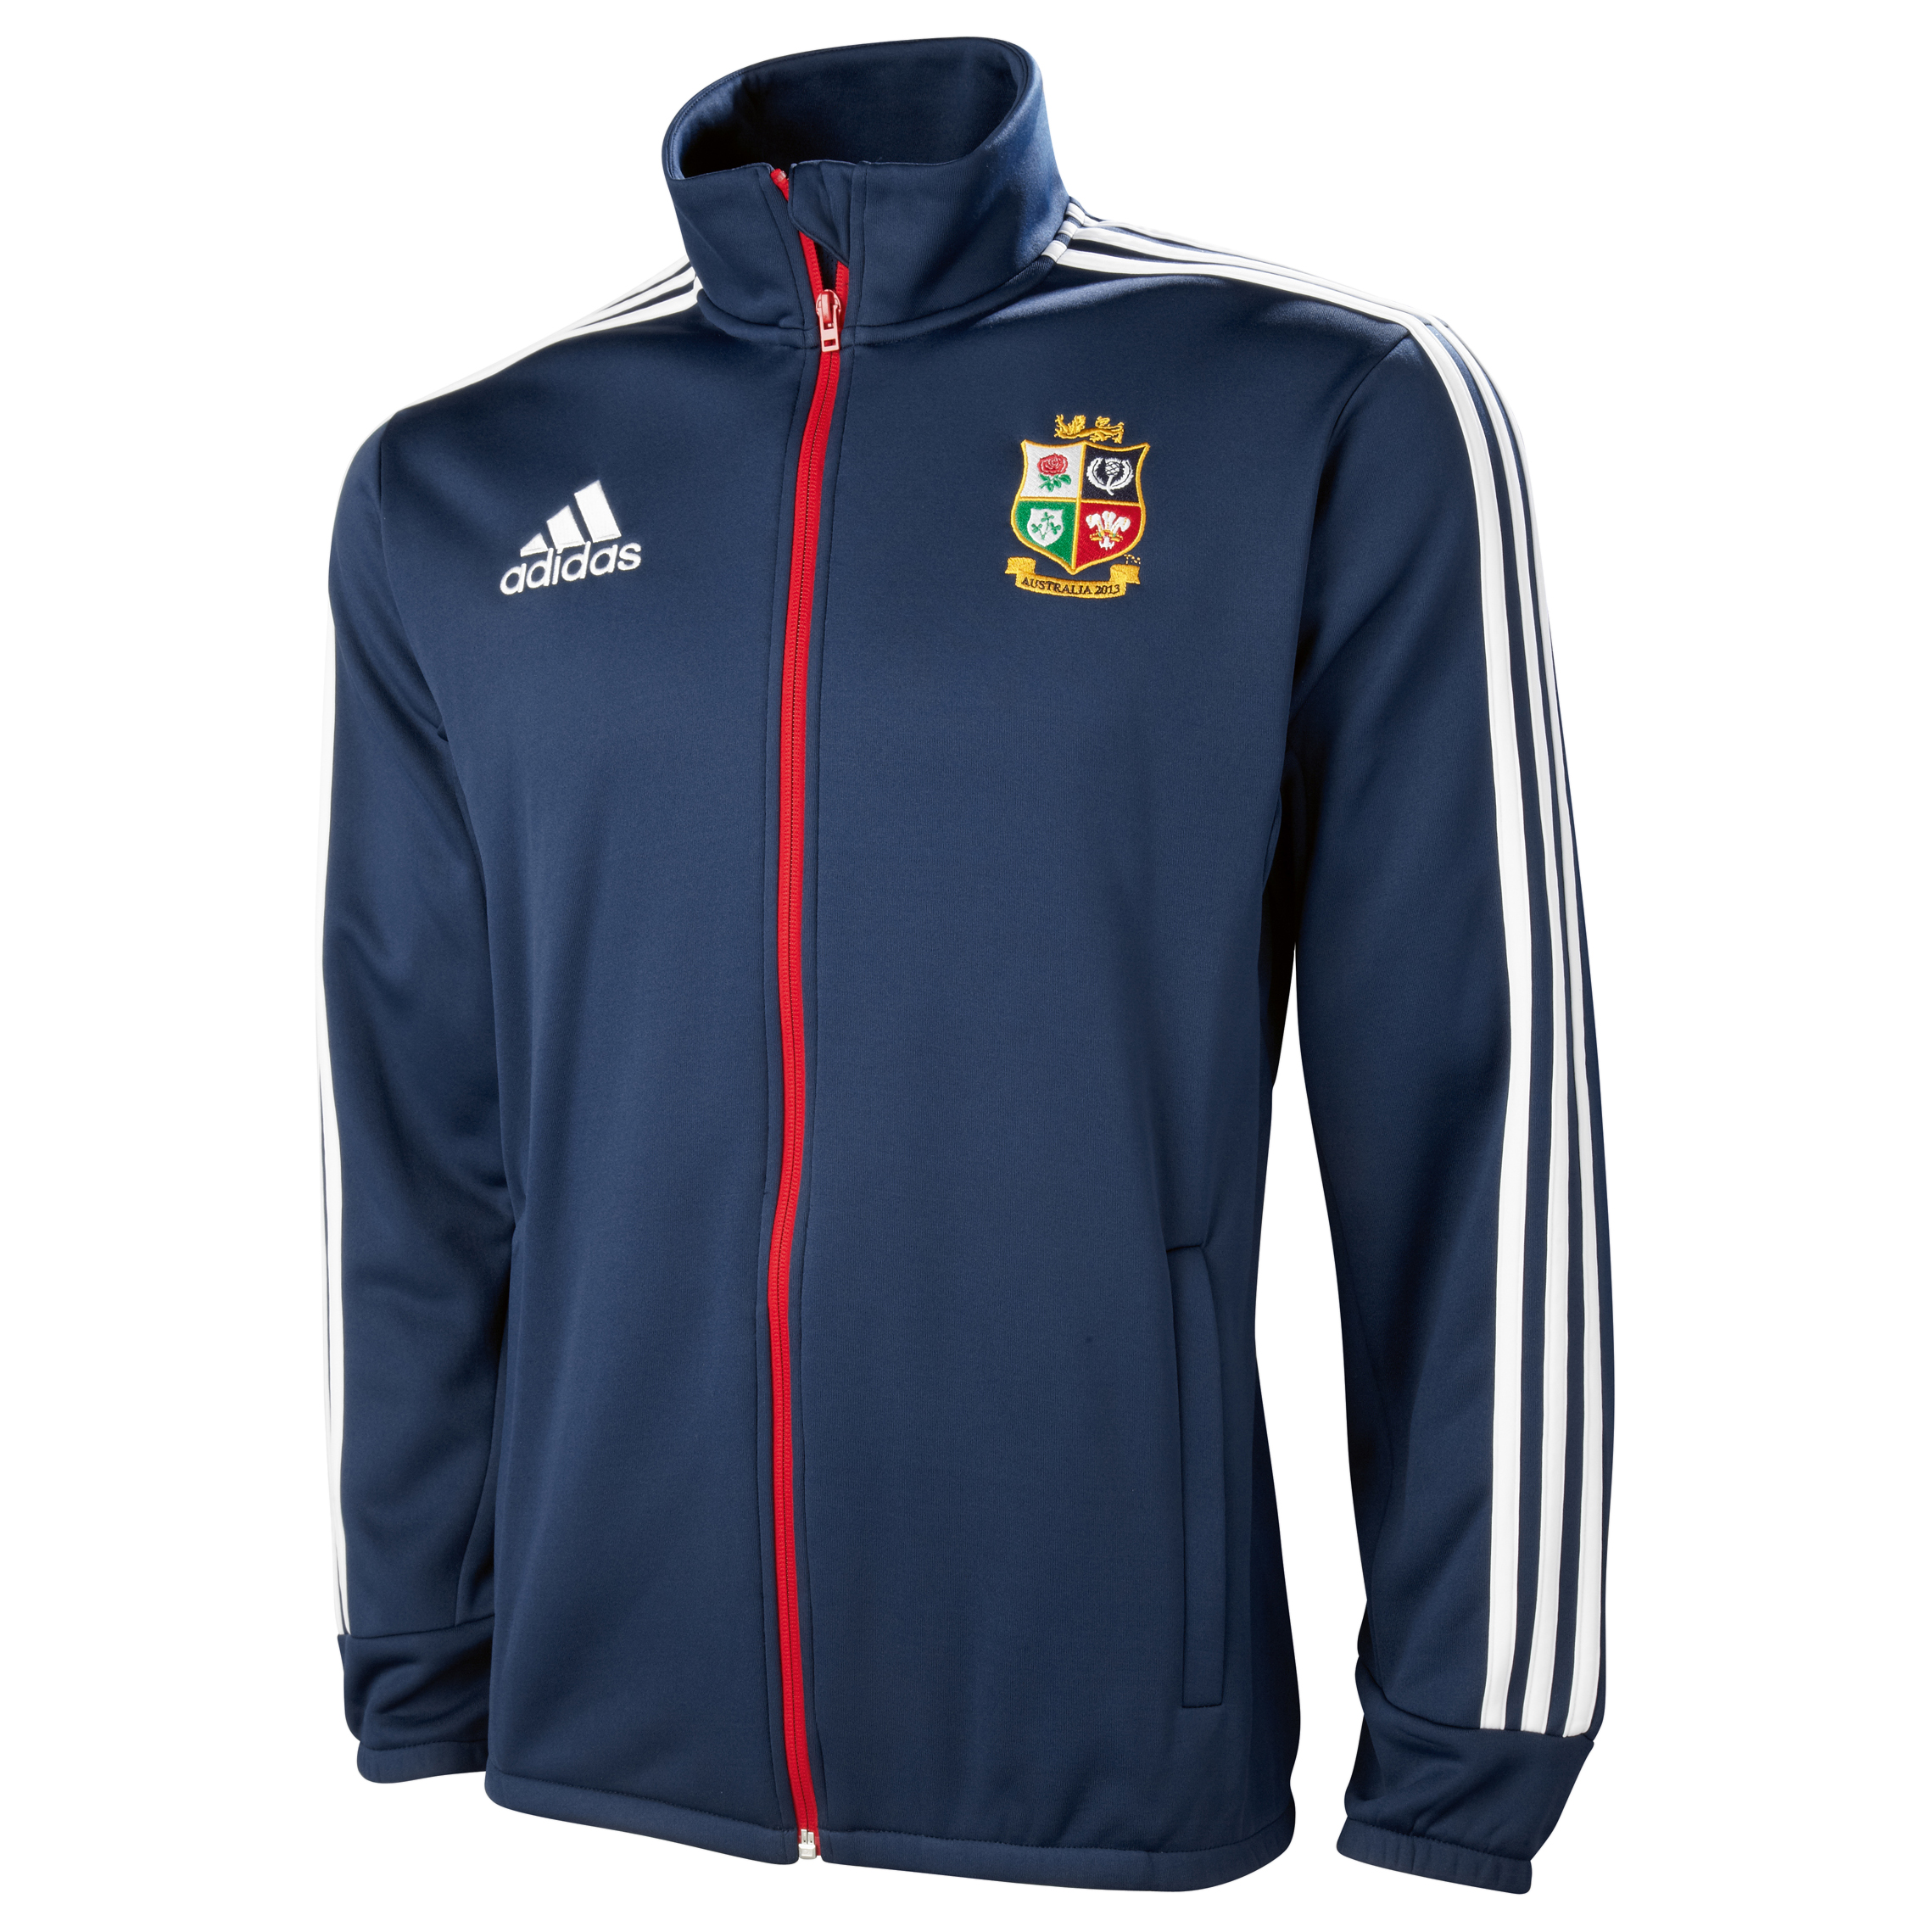 adidas British and Irish Lions Fleece - Collegiate Navy/White